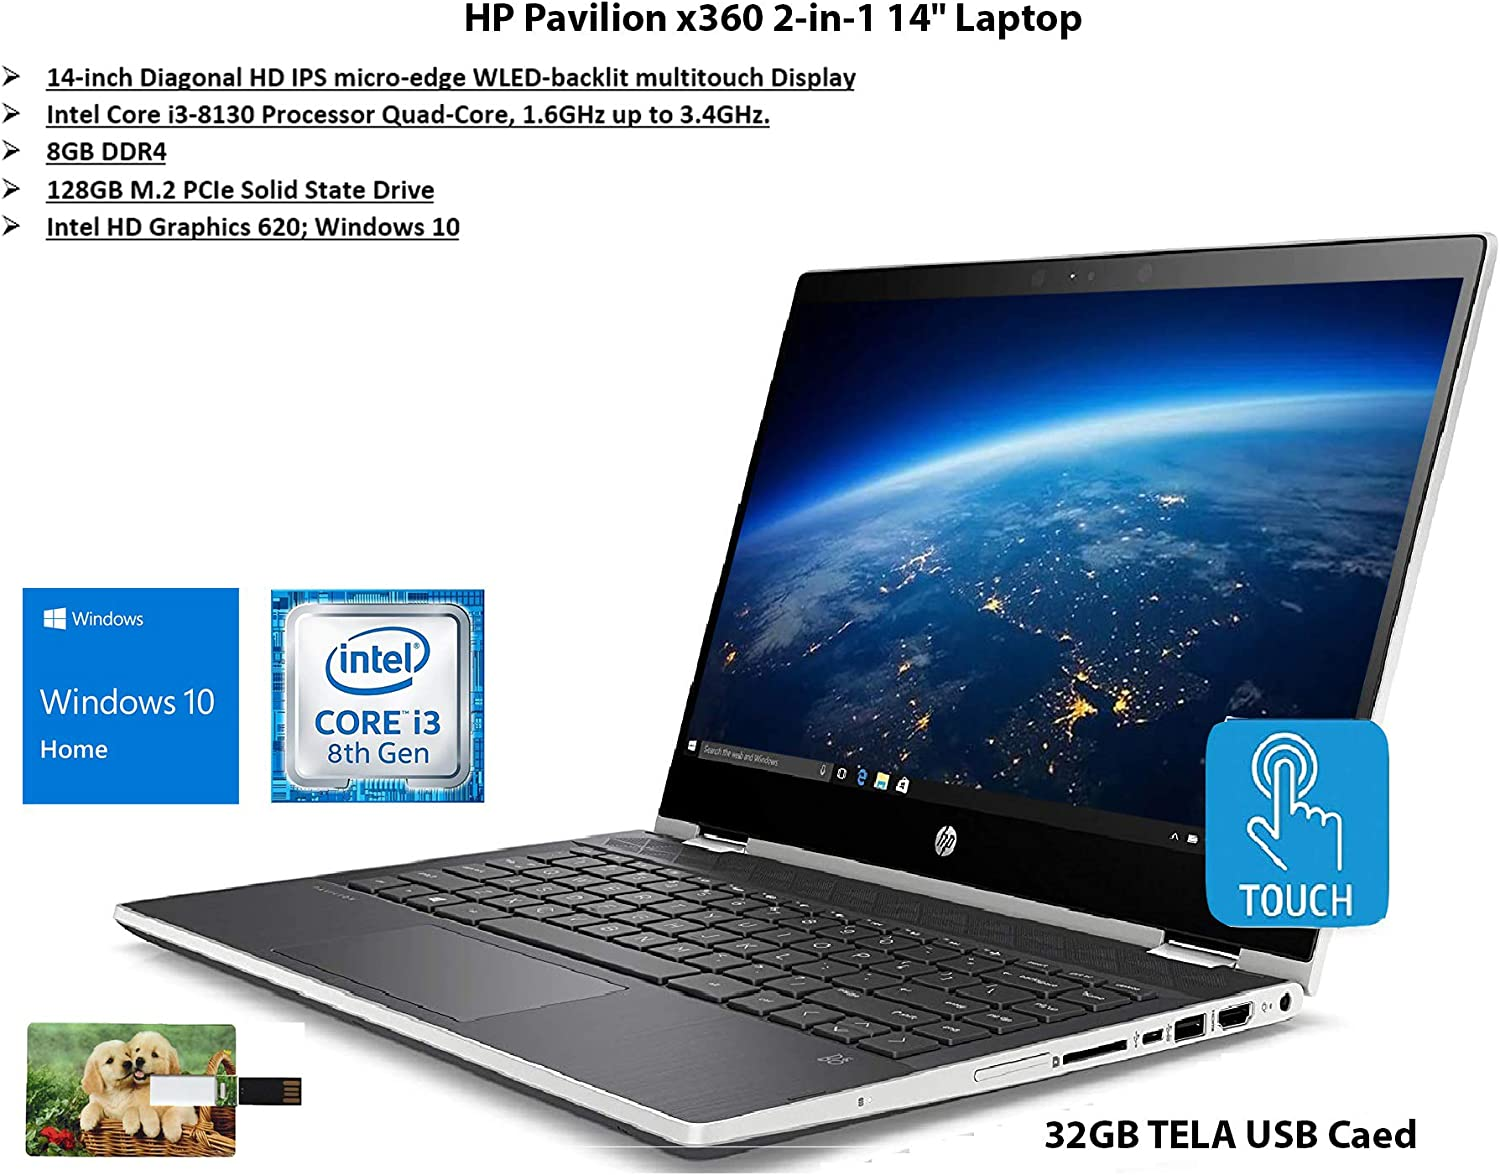 "2020 Newest HP Pavilion x360 2-in-1 14"" Diagonal HD IPS Touchscreen Laptop Intel Core i3 8GB SDRAM 128GB SSD Ash Silver Keyboard Frame, Natural Silver, Windows 10 